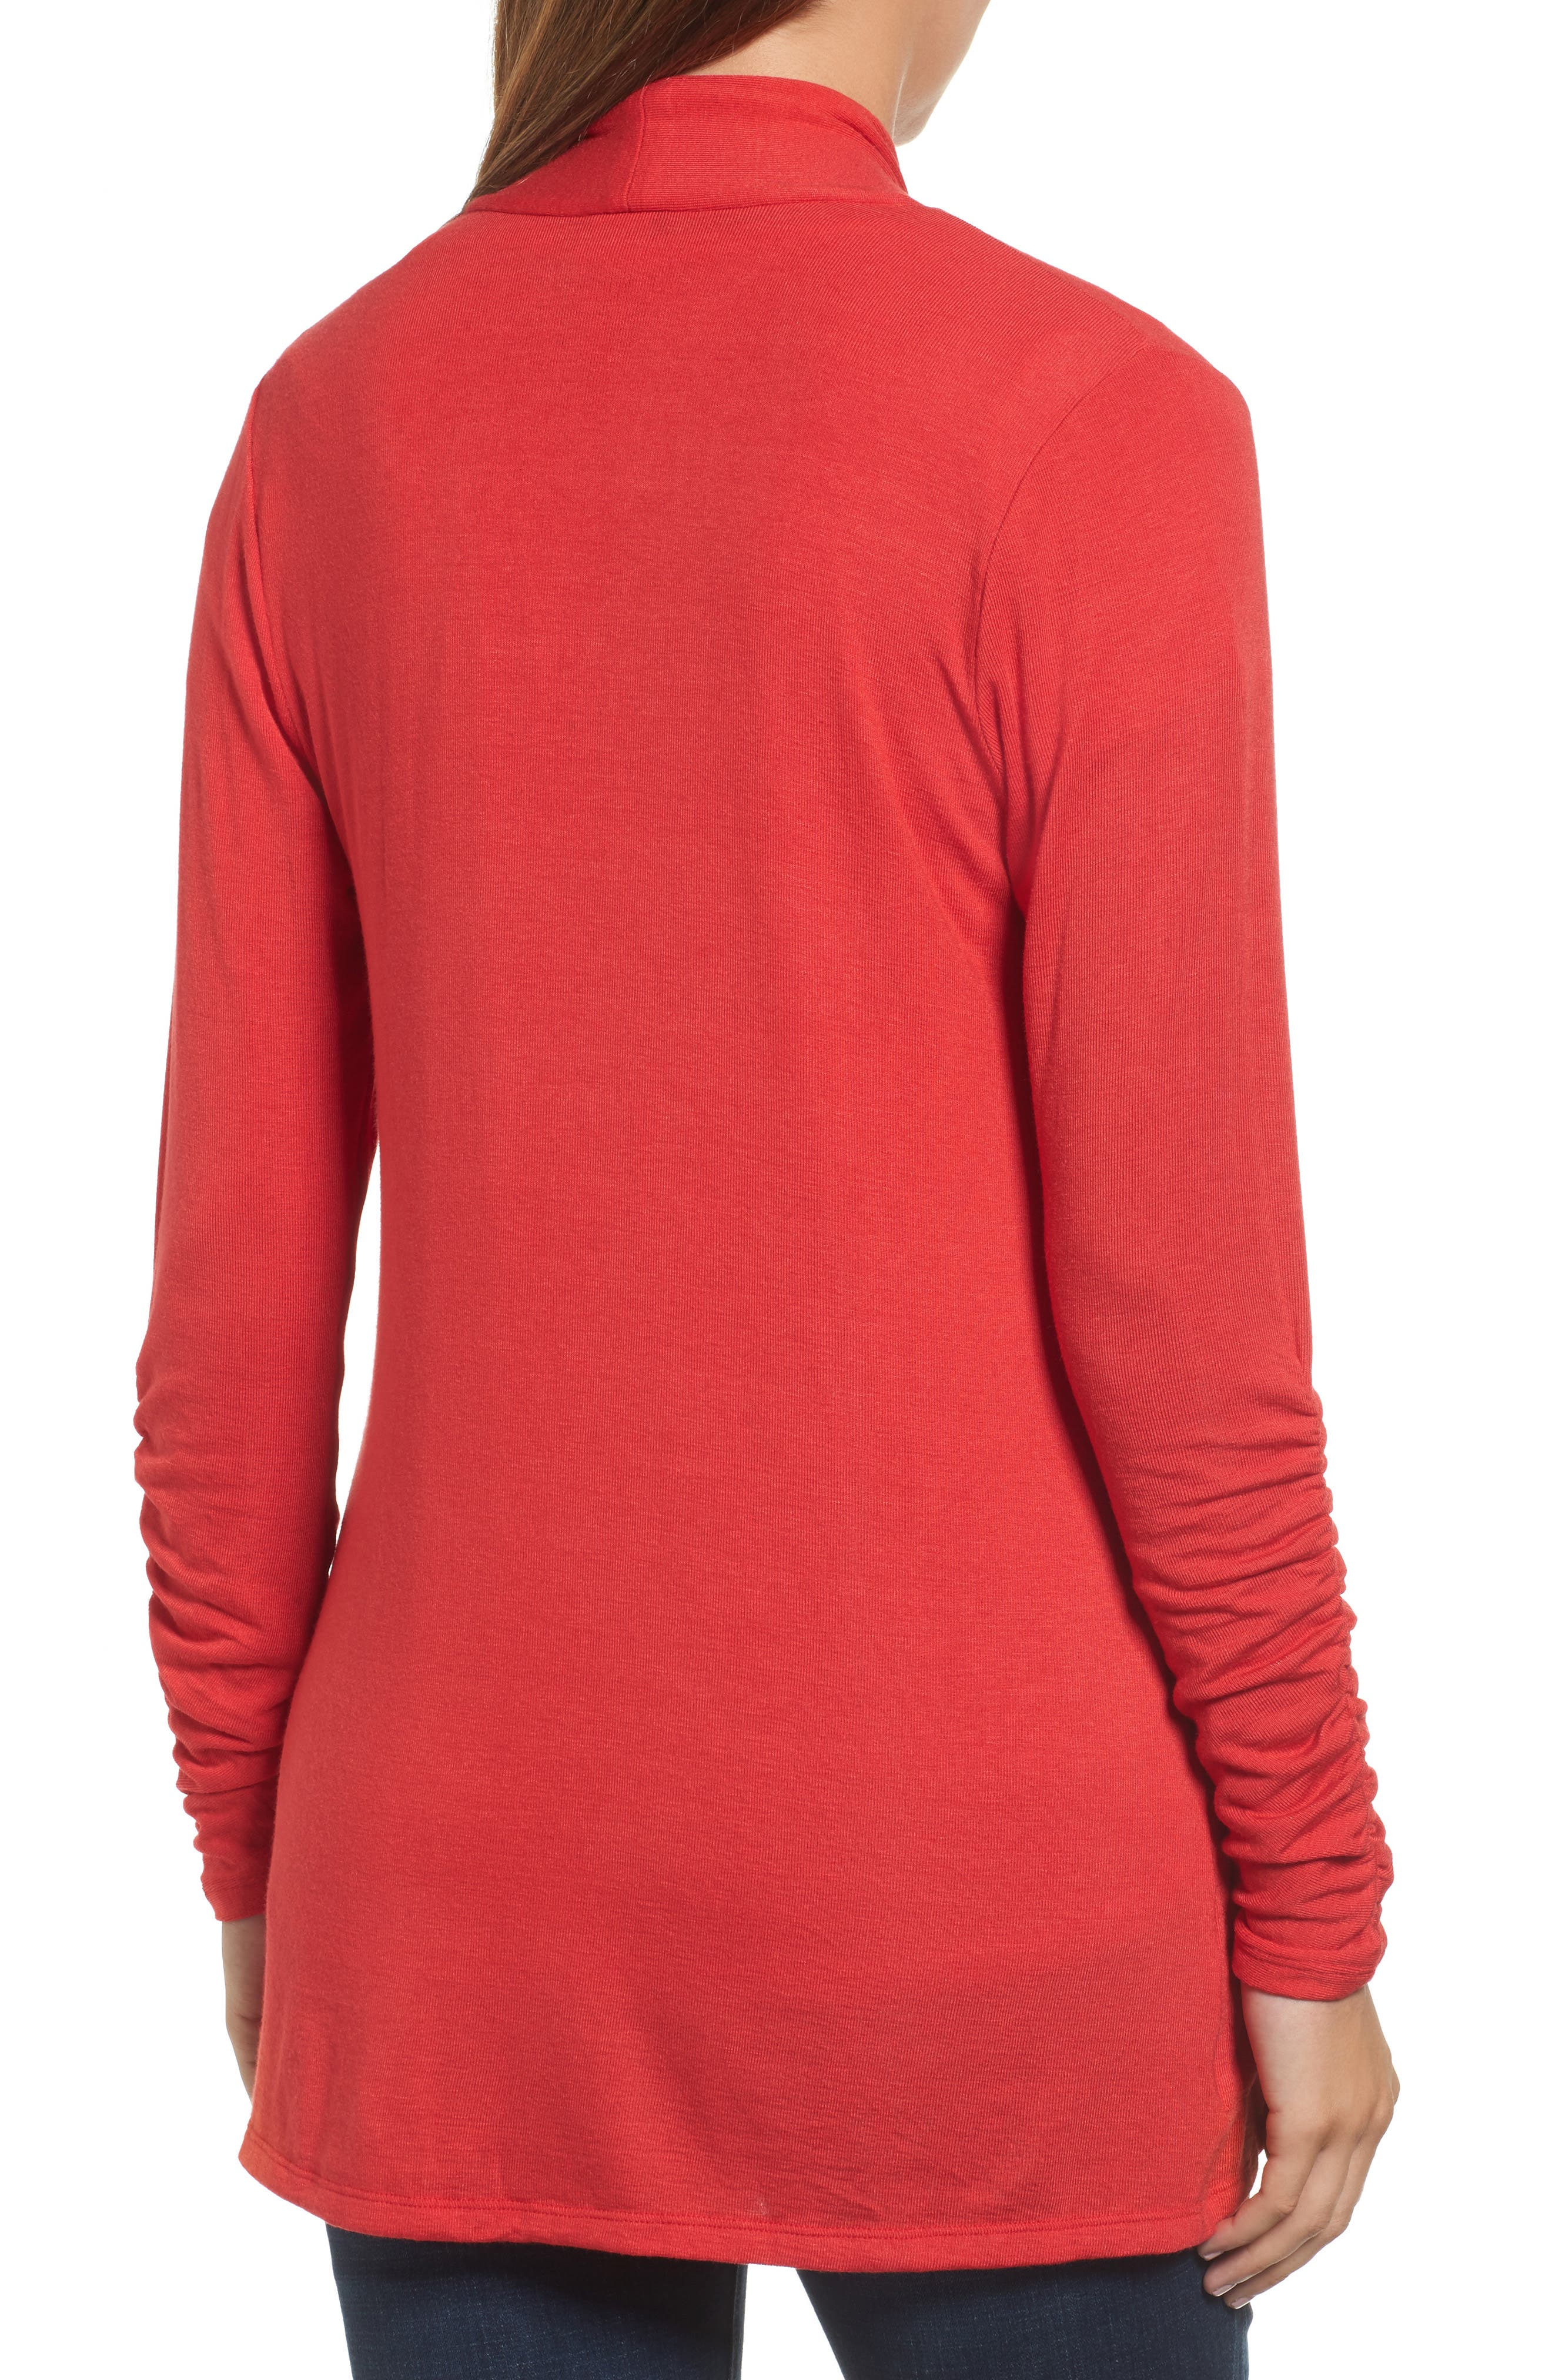 Ruched Sleeve Cardigan,                             Alternate thumbnail 2, color,                             Red Pepper